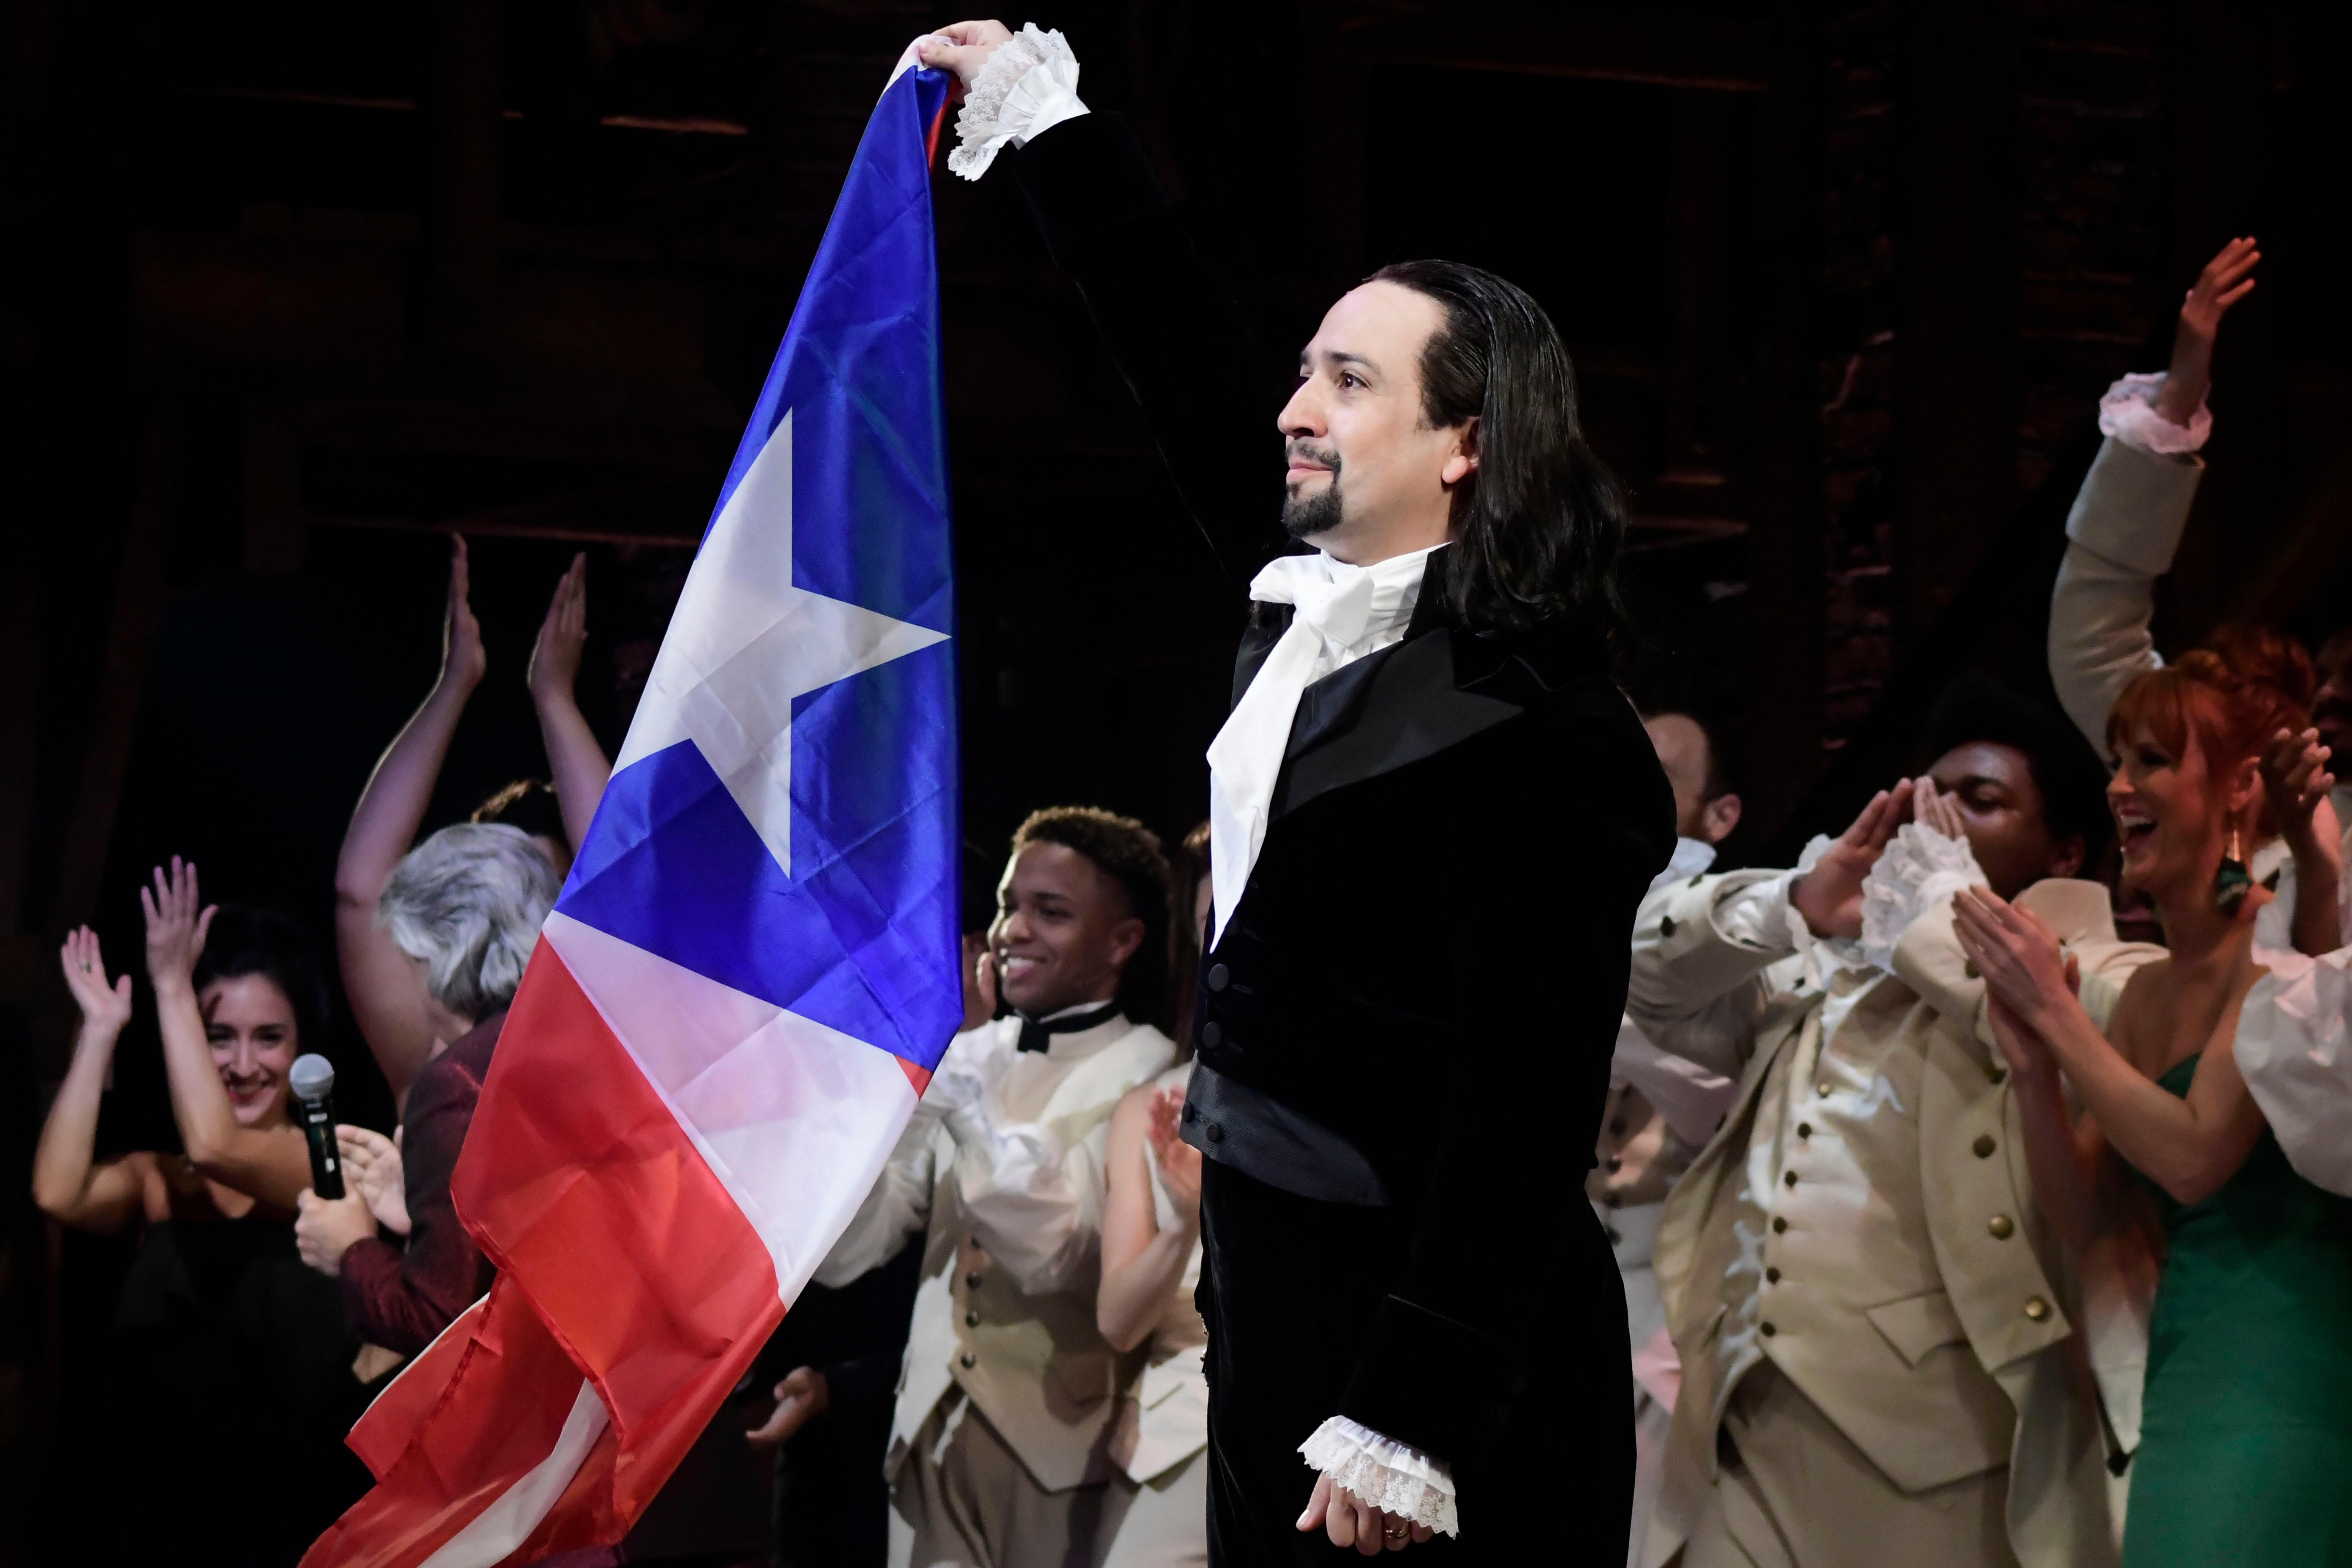 Lin-Manuel Miranda, composer and creator of the award-winning Broadway musical, Hamilton, proudly waves a Puerto Rican flag after receiving a standing ovation at the end of the play's premiere held at the Santurce Fine Arts Center, in San Juan, Puerto Rico, . The musical is set to run for two weeks and will raise money for local arts programsHamilton, San Juan, Puerto Rico - 11 Jan 2019